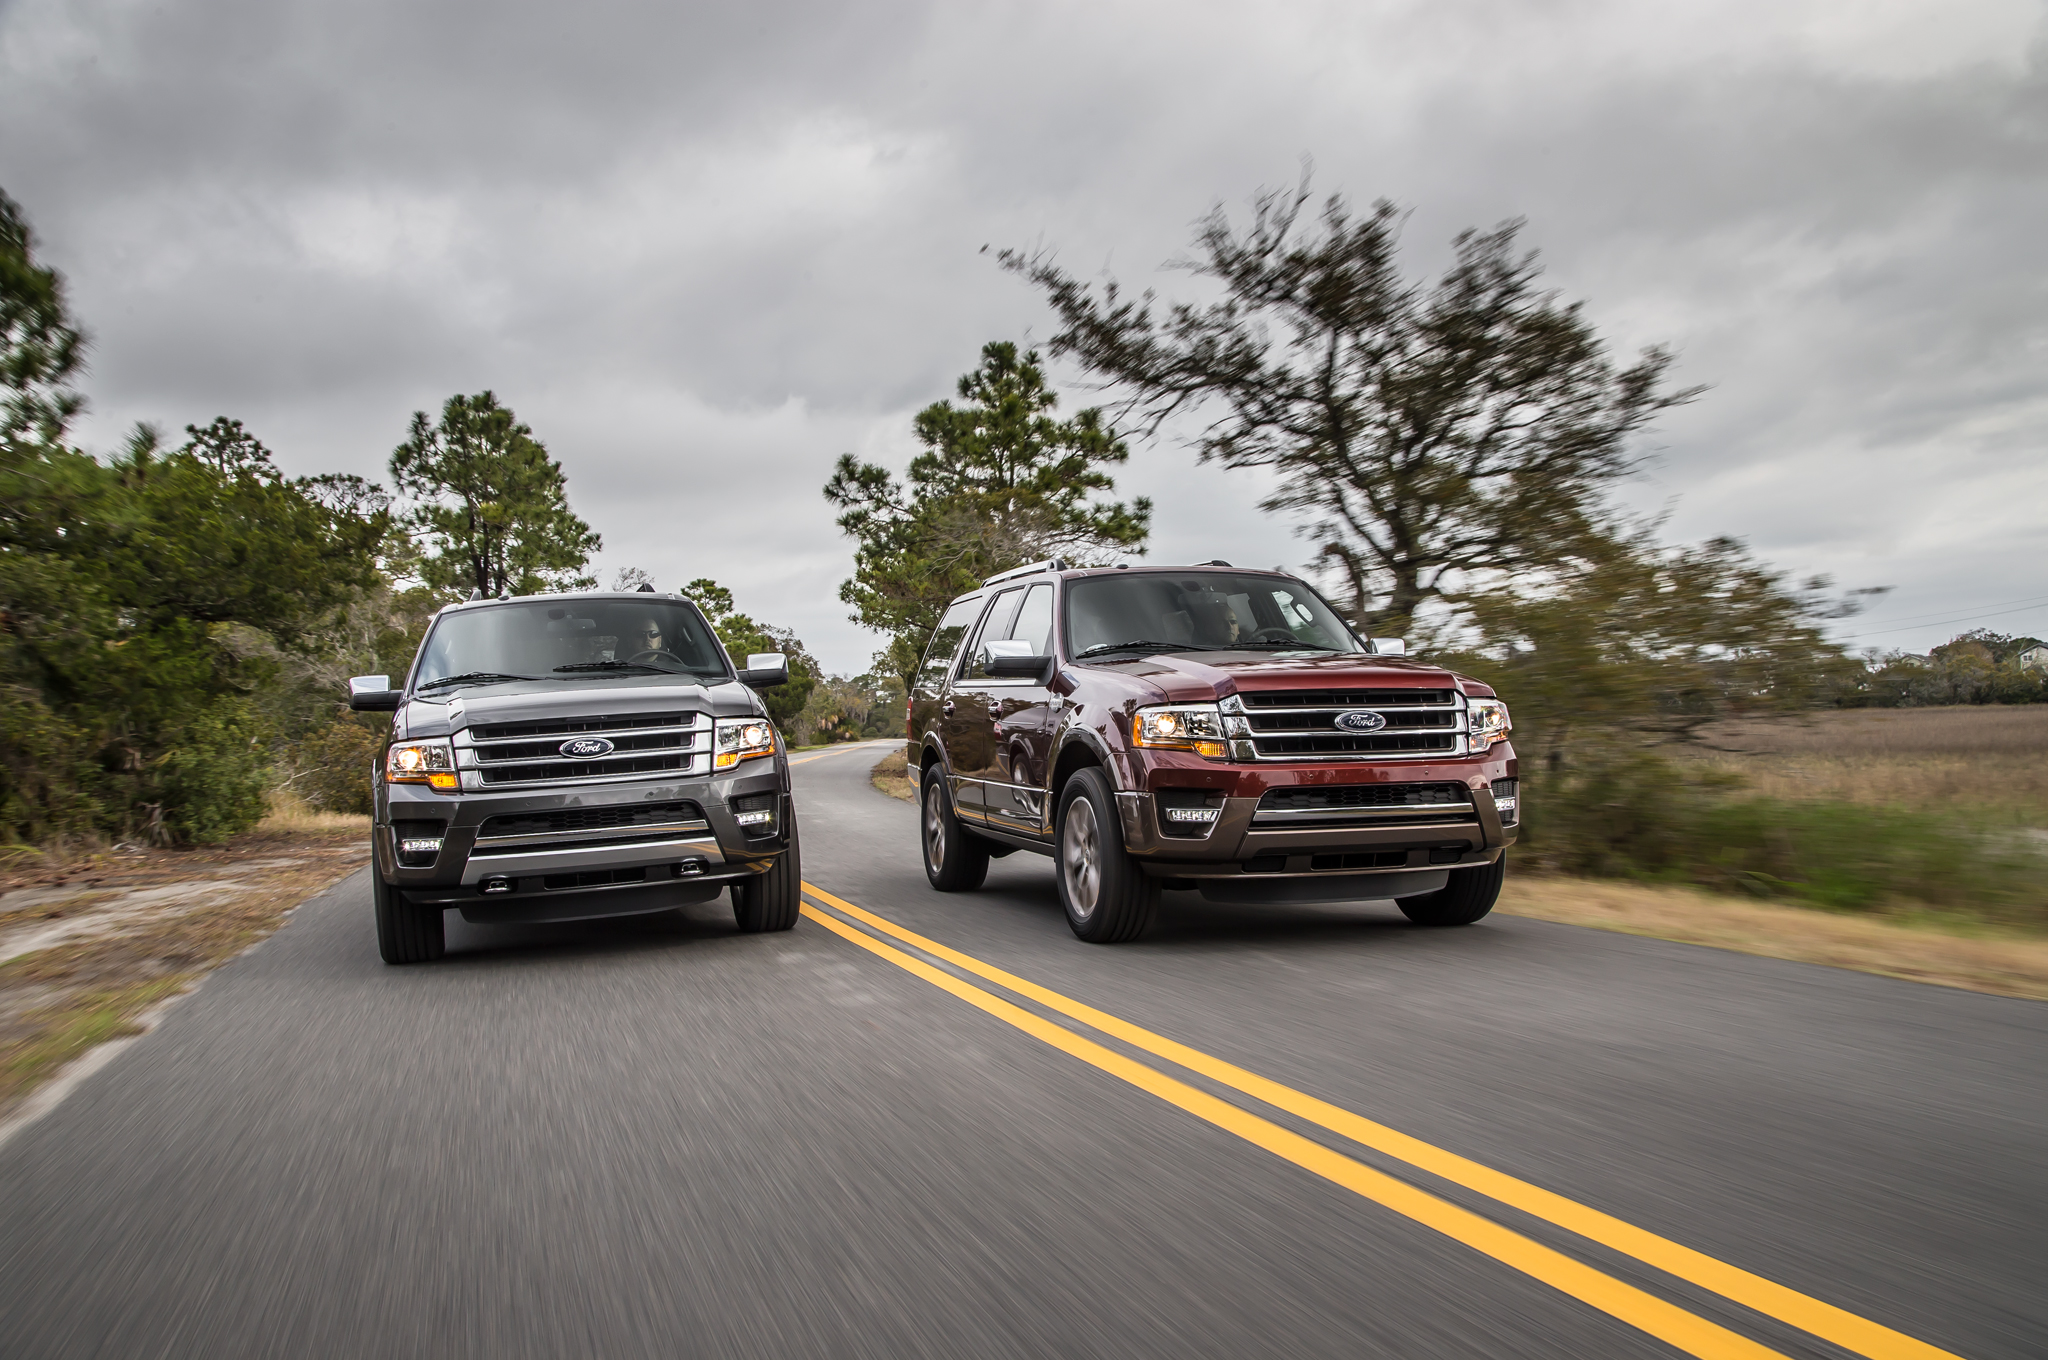 2015 Ford Expedition Drive (Photo 2 of 6)